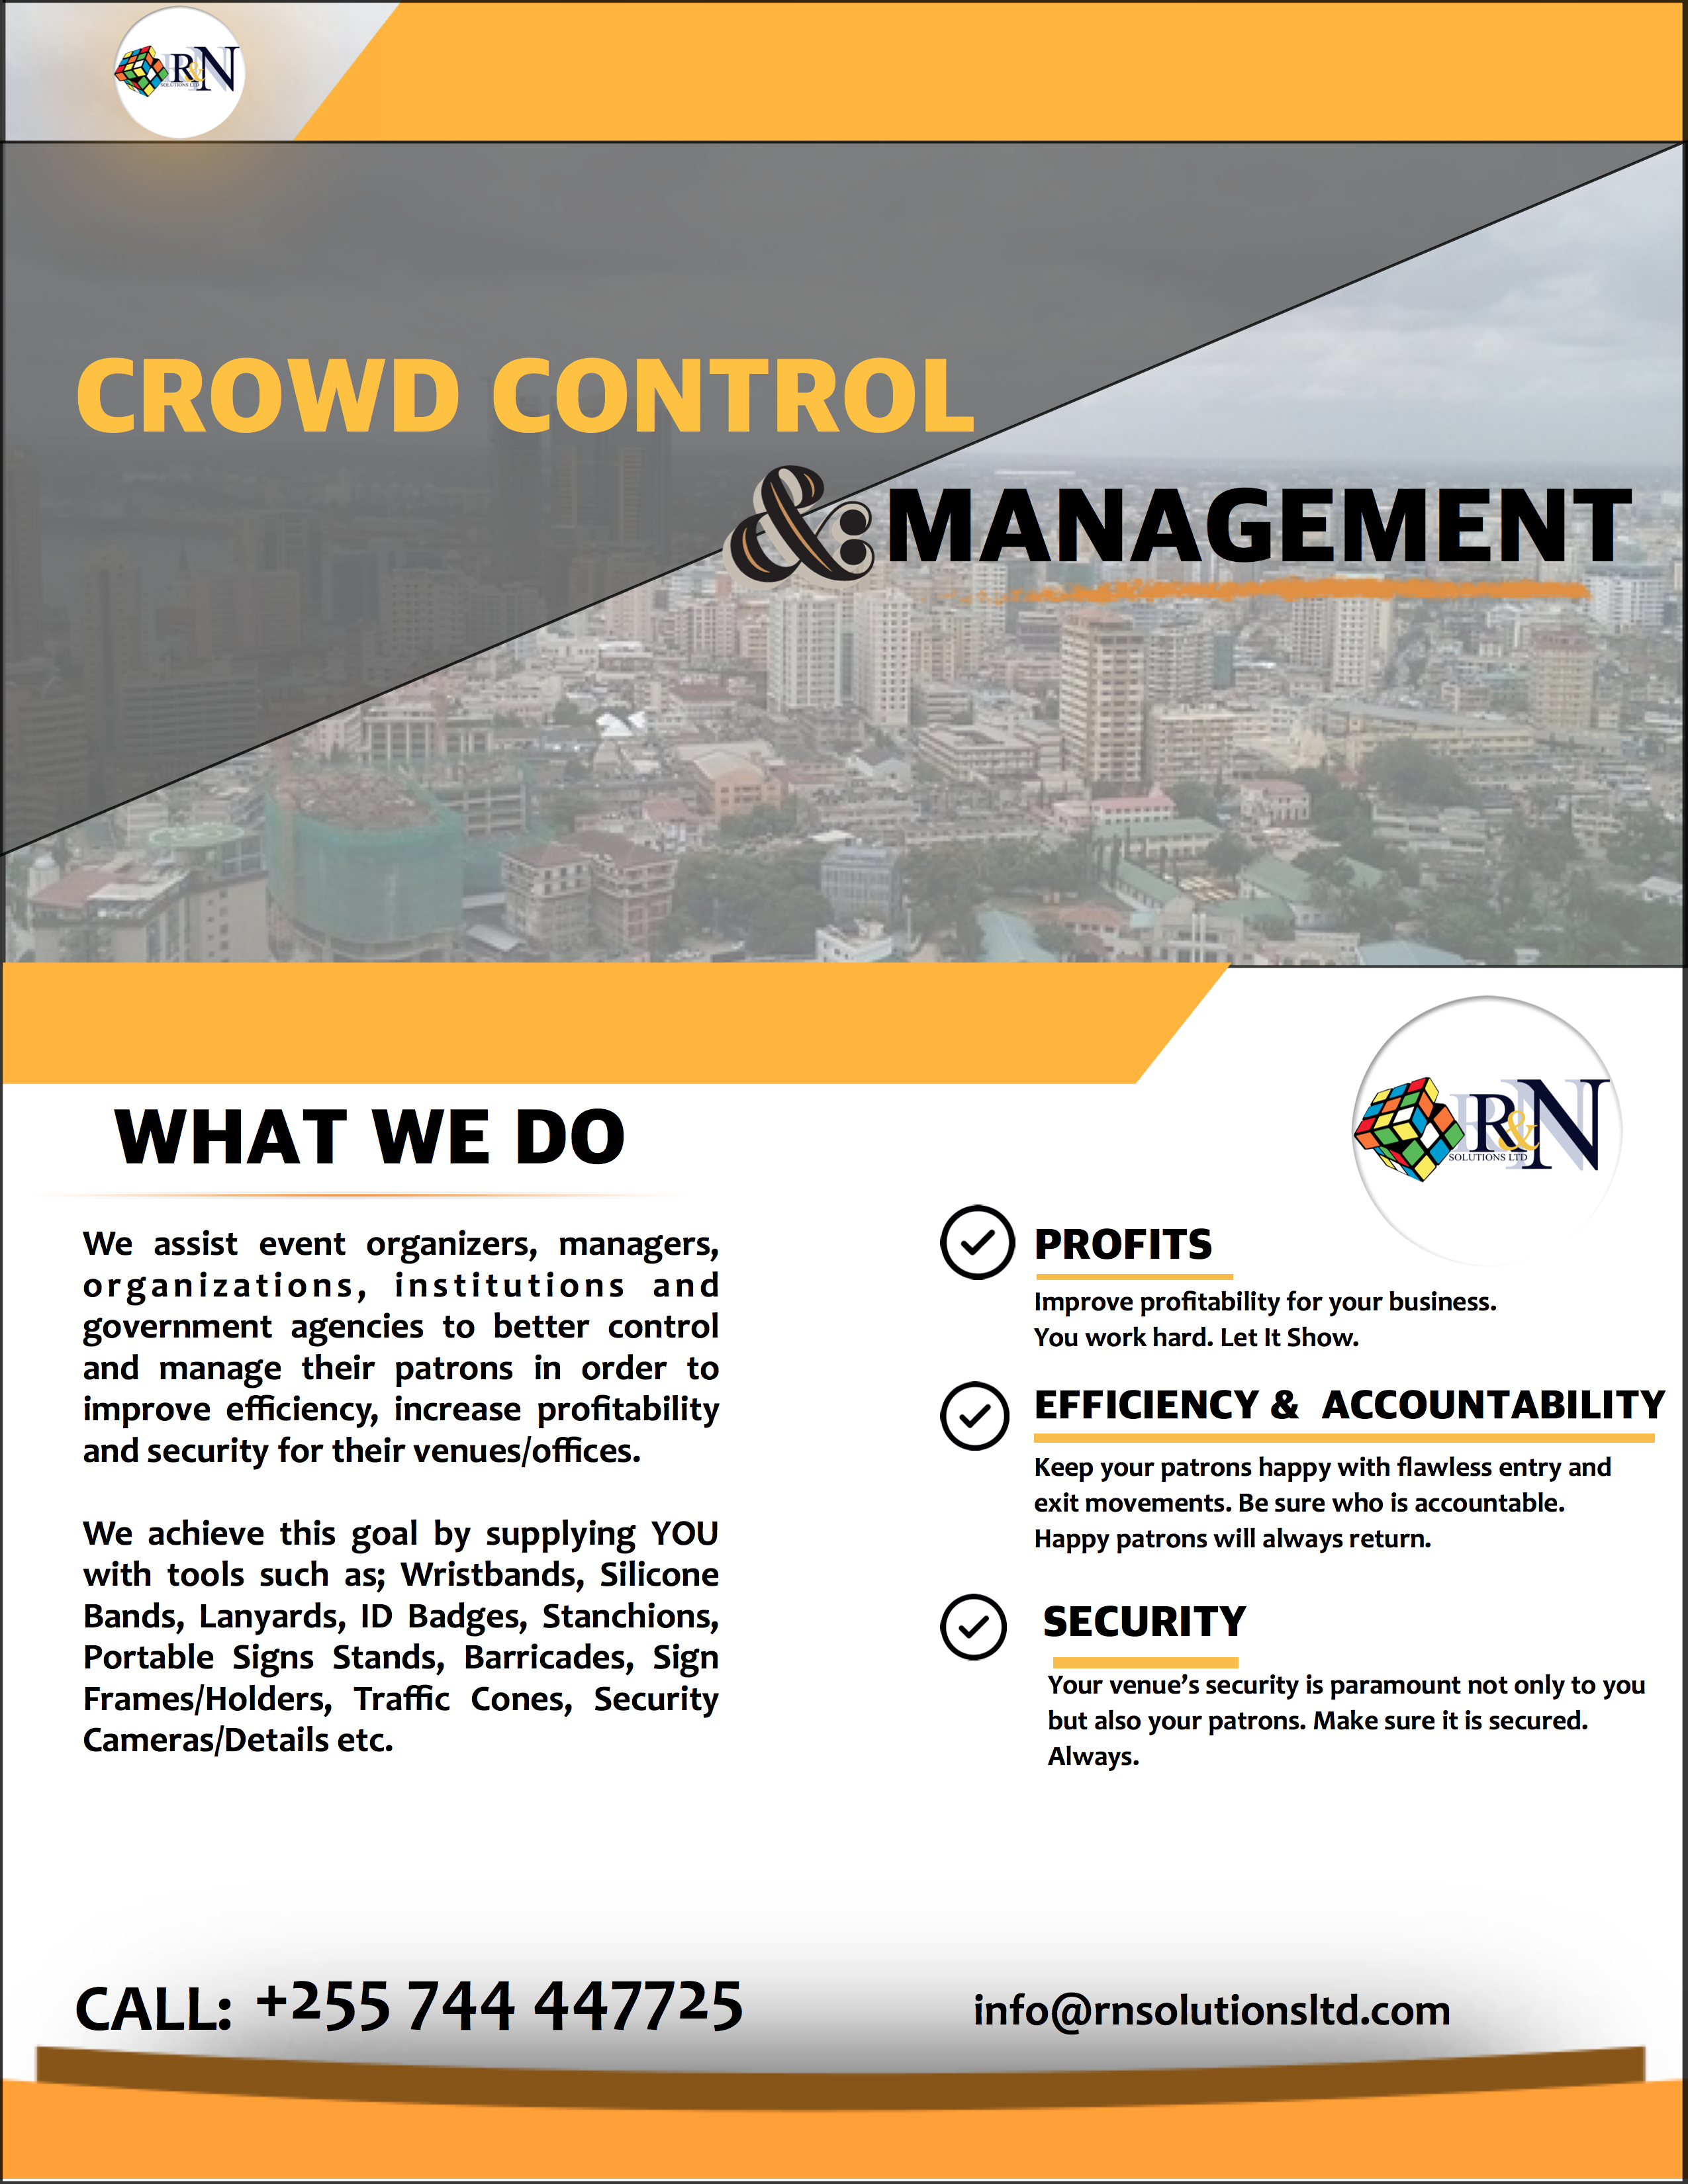 R&N Solutions LTD: For All Your Crowd Control & Management Needs